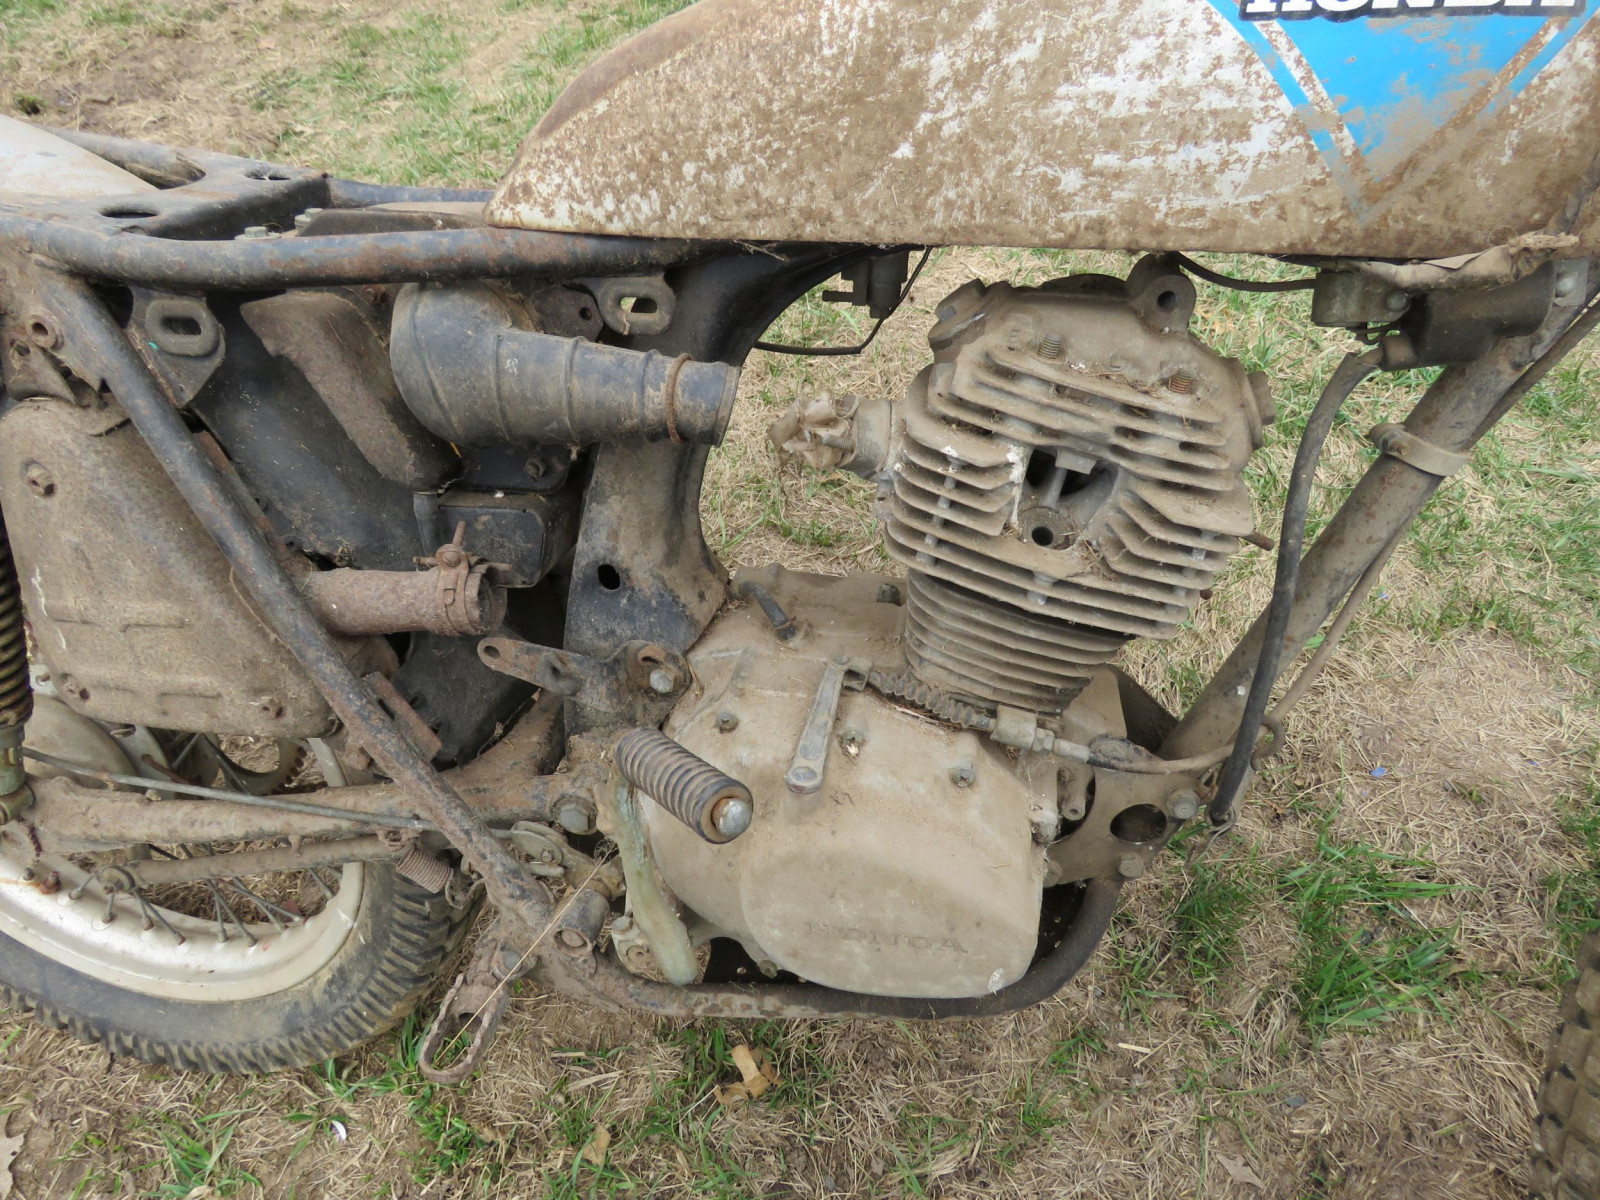 Honda Dirt bike for Project or parts - Image 3